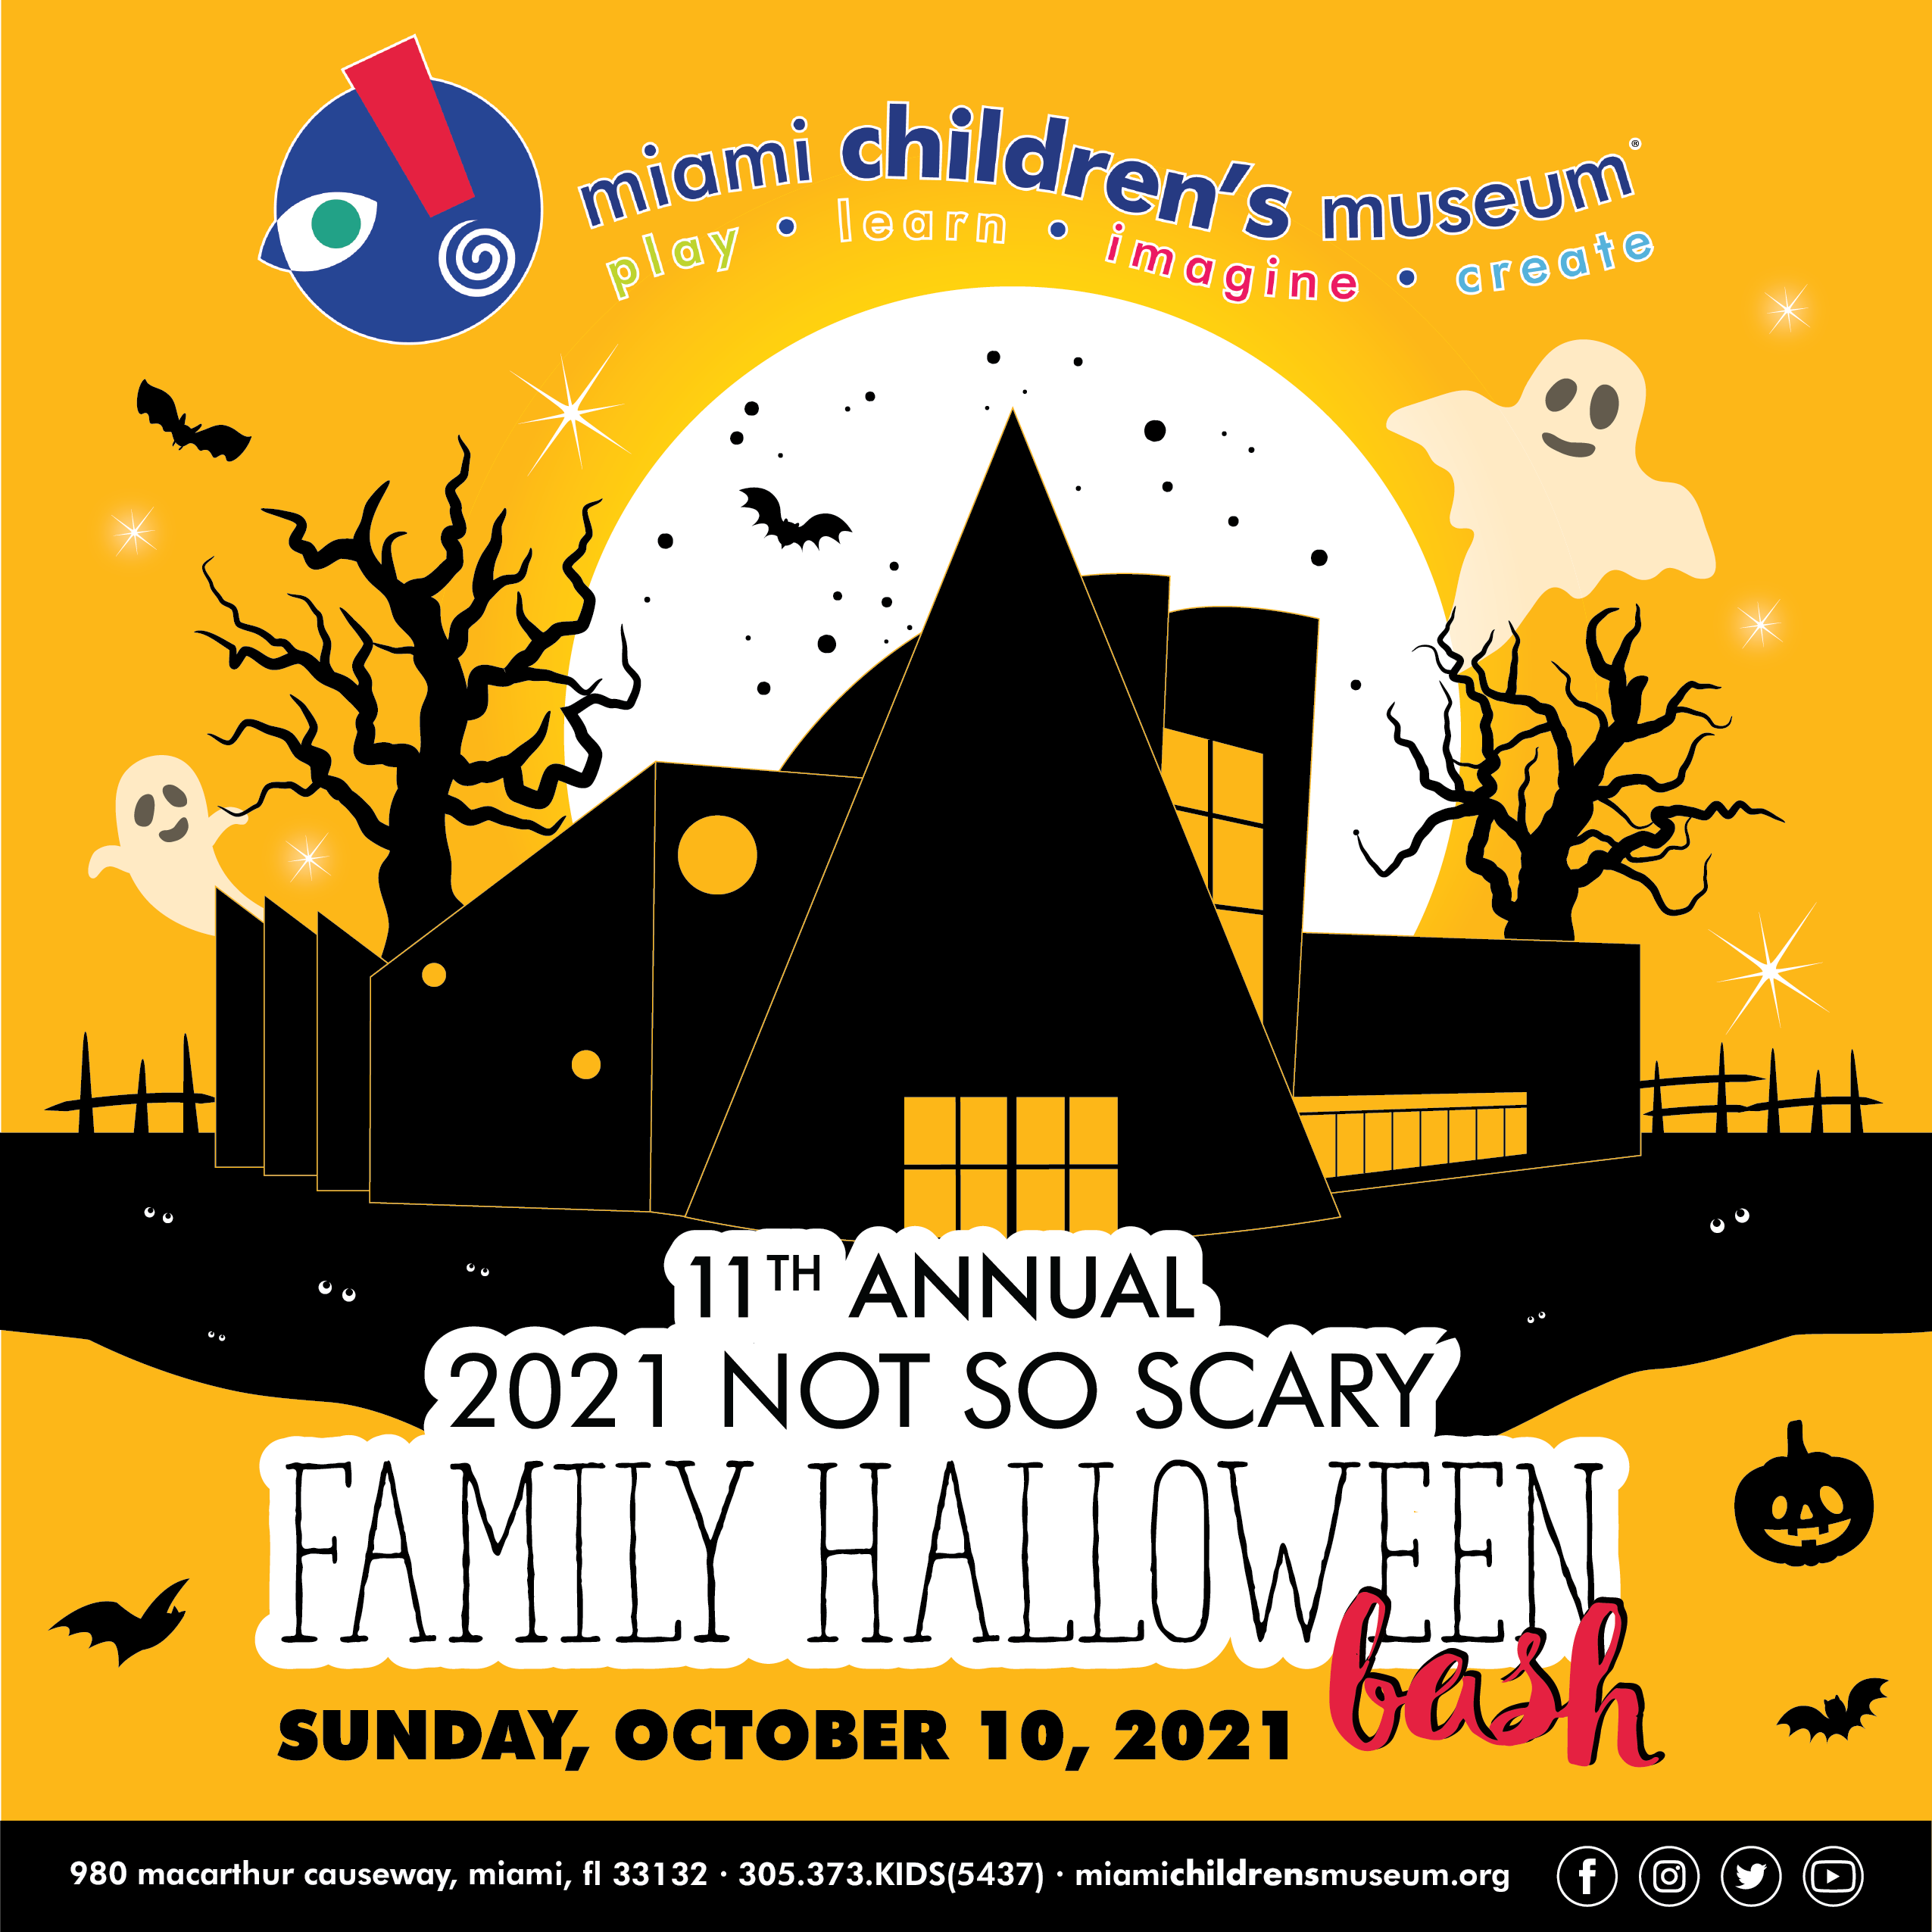 MIAMI CHILDREN'S MUSEUM SETS DATE FOR RETURN OF THE 11TH ANNUAL NOT SO SCARY FAMILY HALLOWEEN BASH Sunday, October 10, 2021